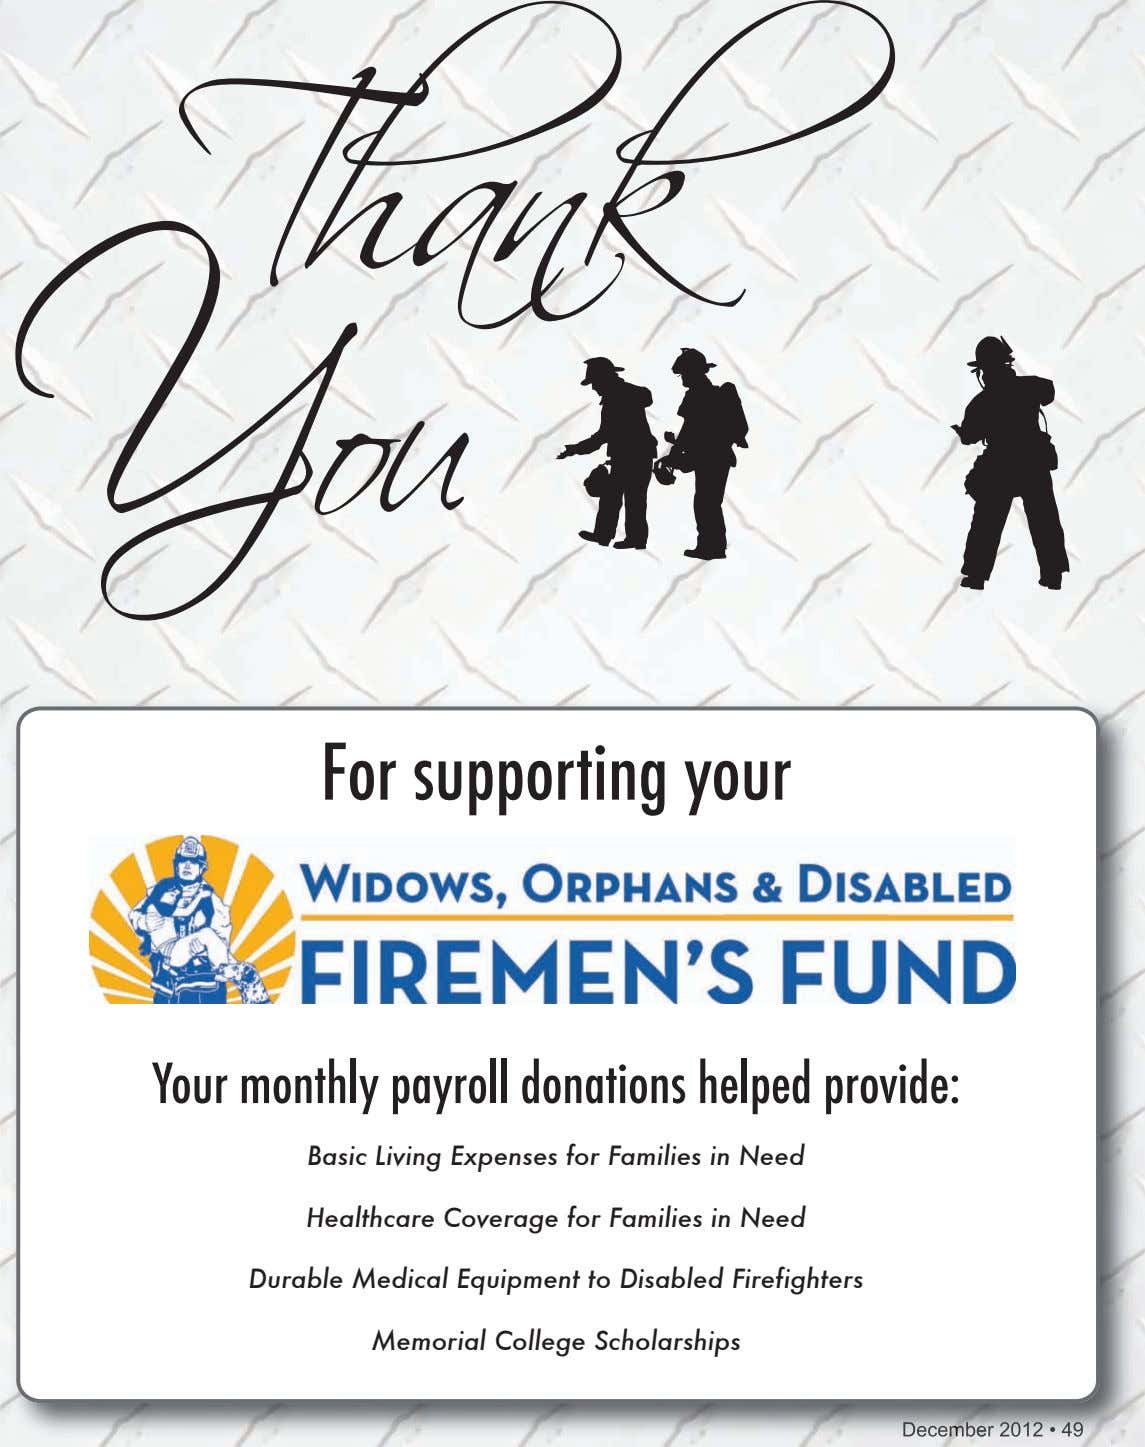 For supporting your Your monthly payroll donations helped provide: Basic Living Expenses for Families in Need